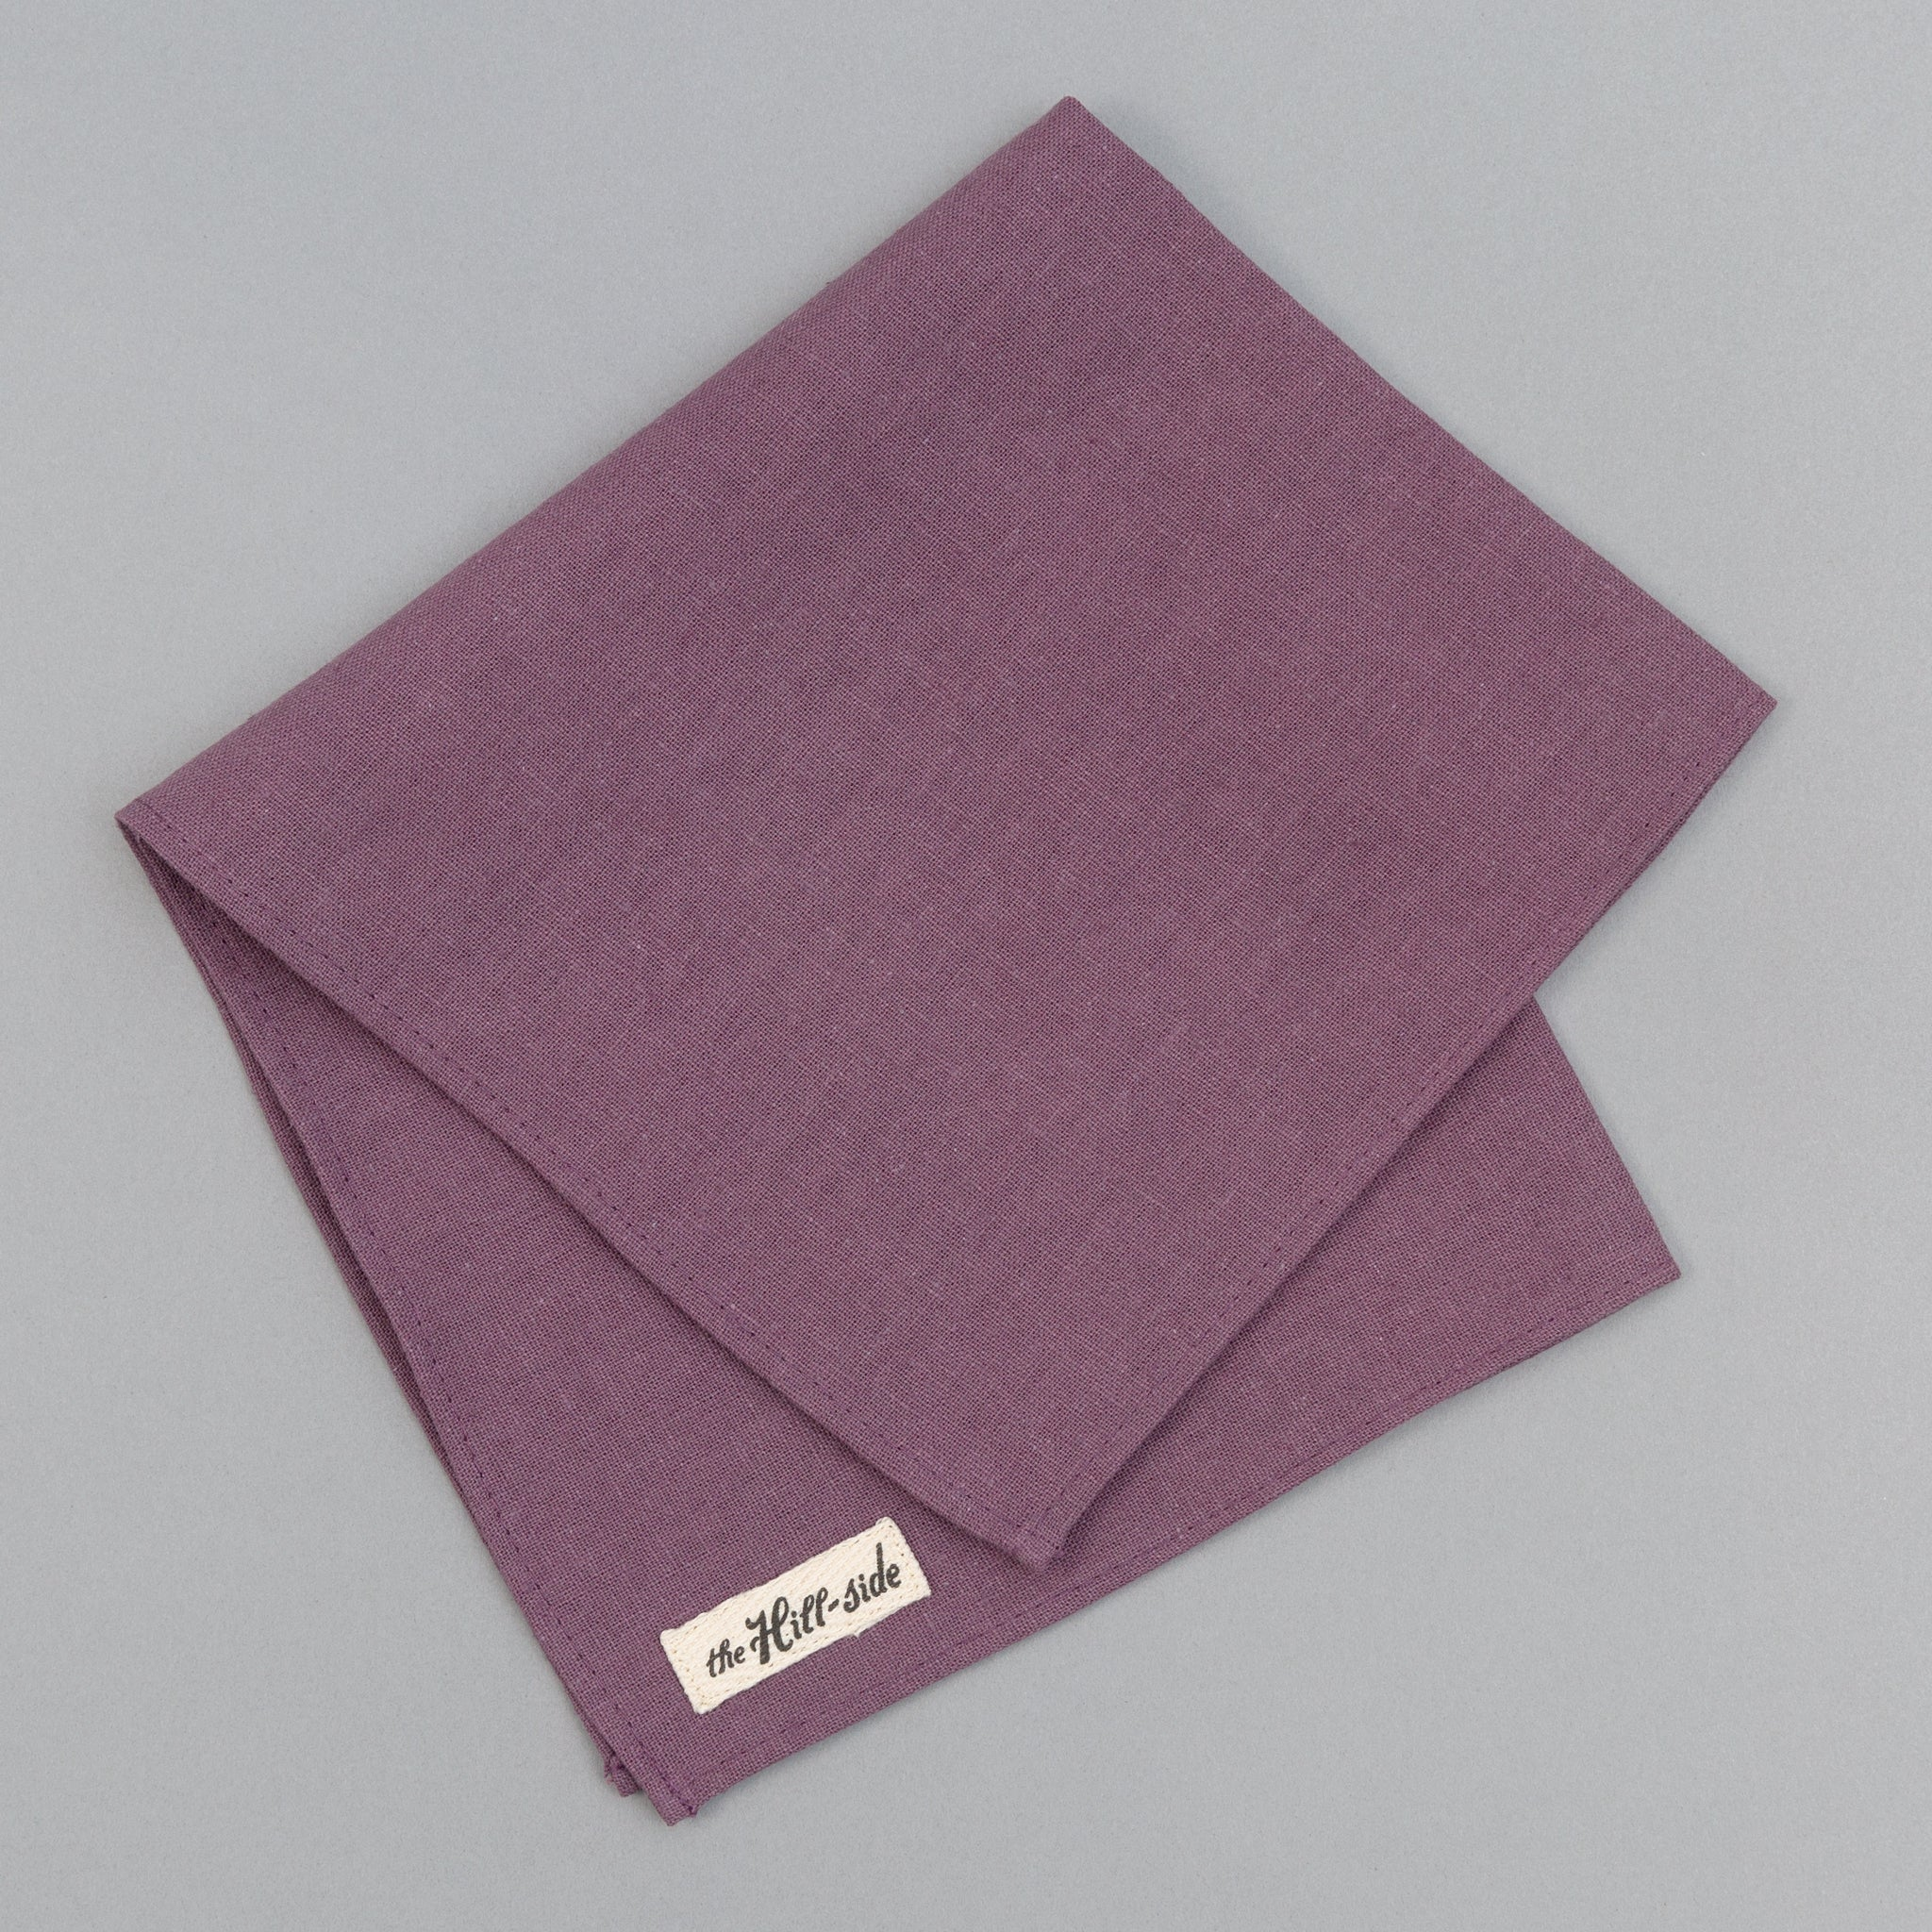 The Hill-Side - Linen / Cotton Oxford Pocket Square, Purple - PS1-419 - image 1